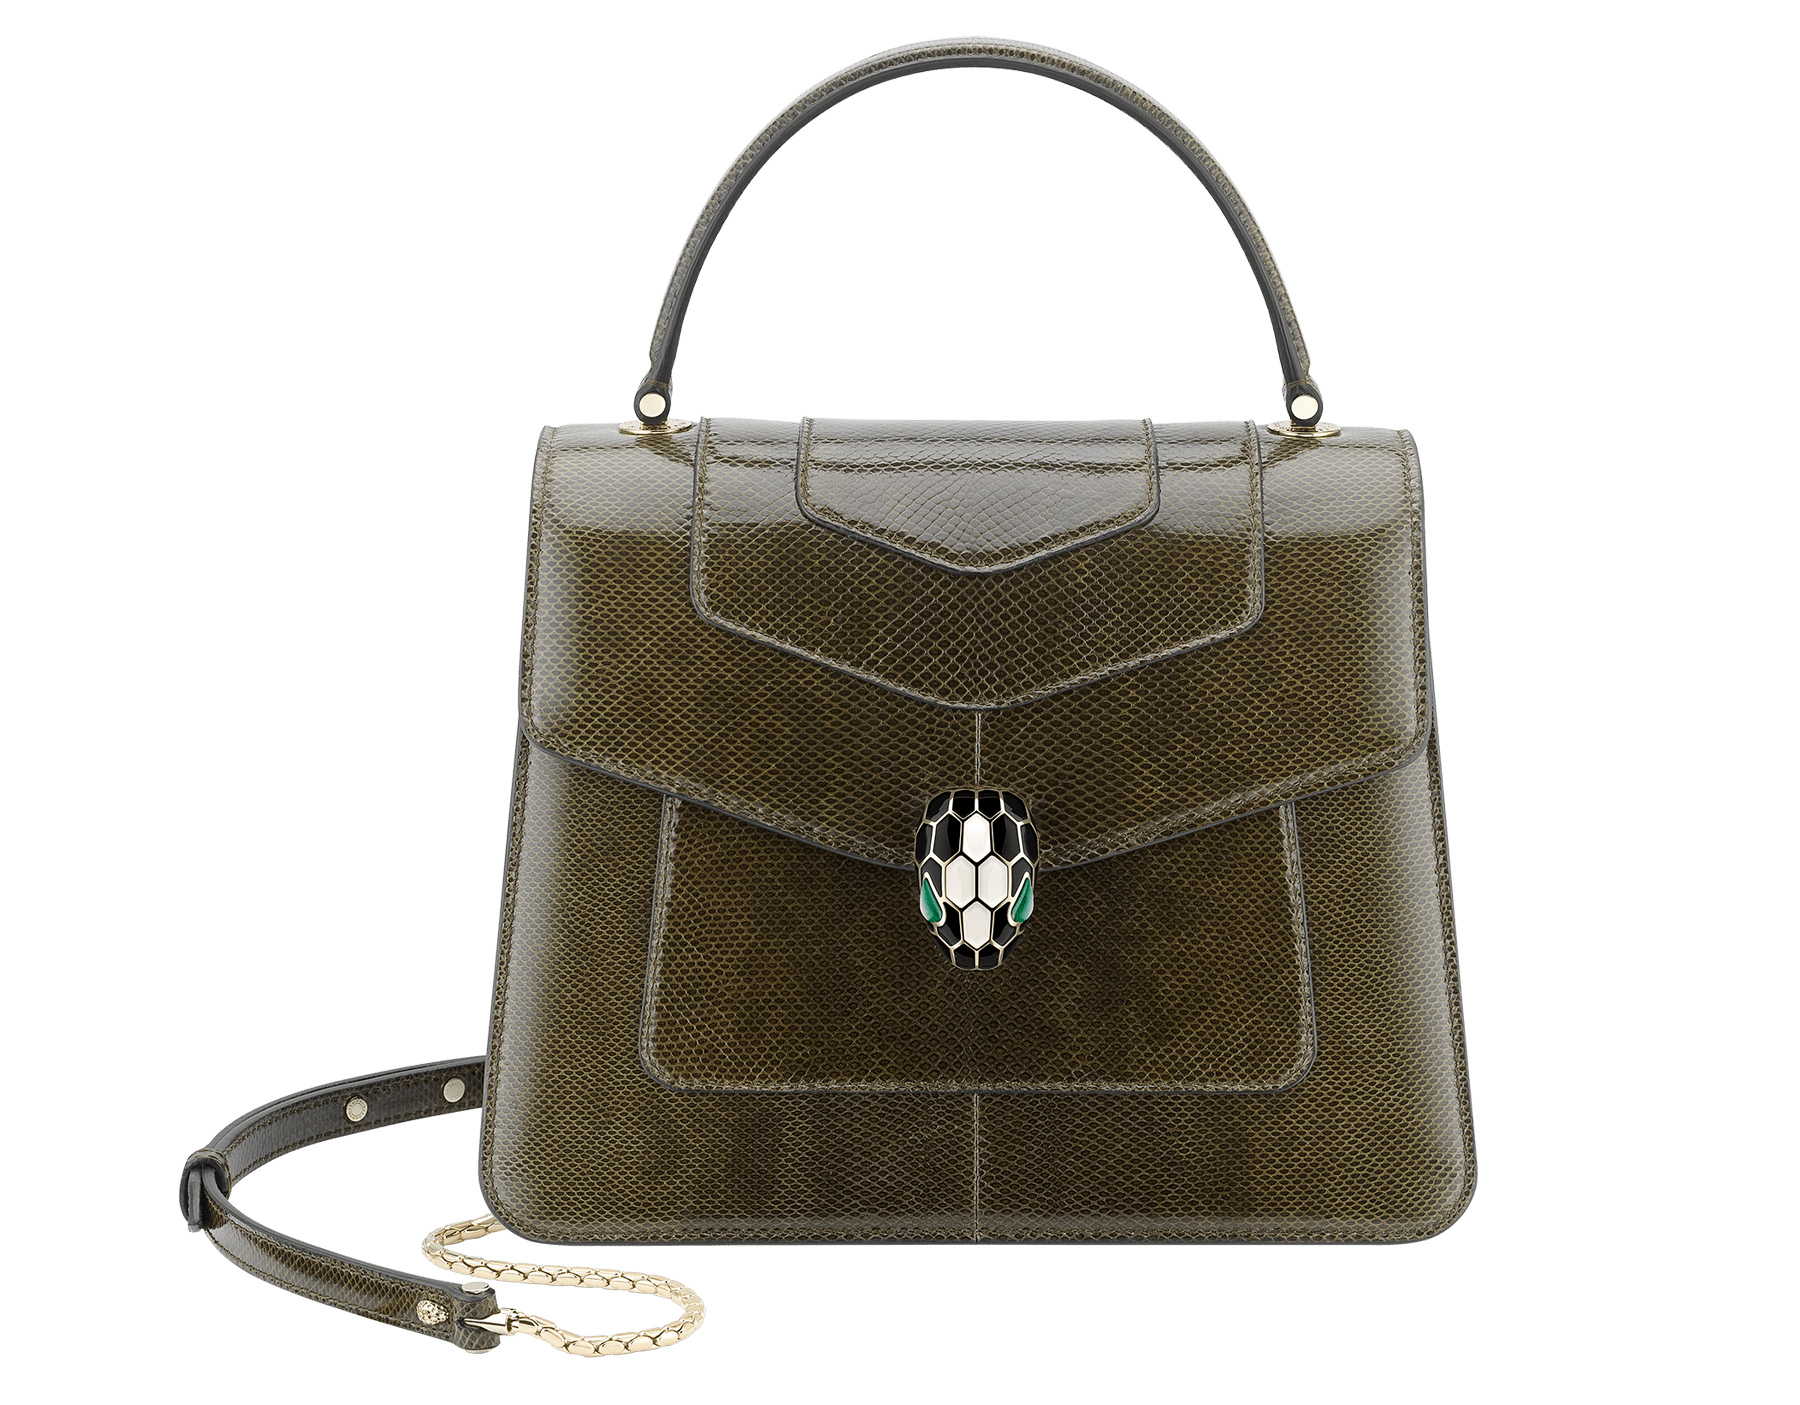 """Serpenti Forever"" top handle bag in mimetic jade shiny karung skin. Iconic snakehead closure in light gold plated brass enriched with black and white enamel and green malachite eyes. 289927 image 1"